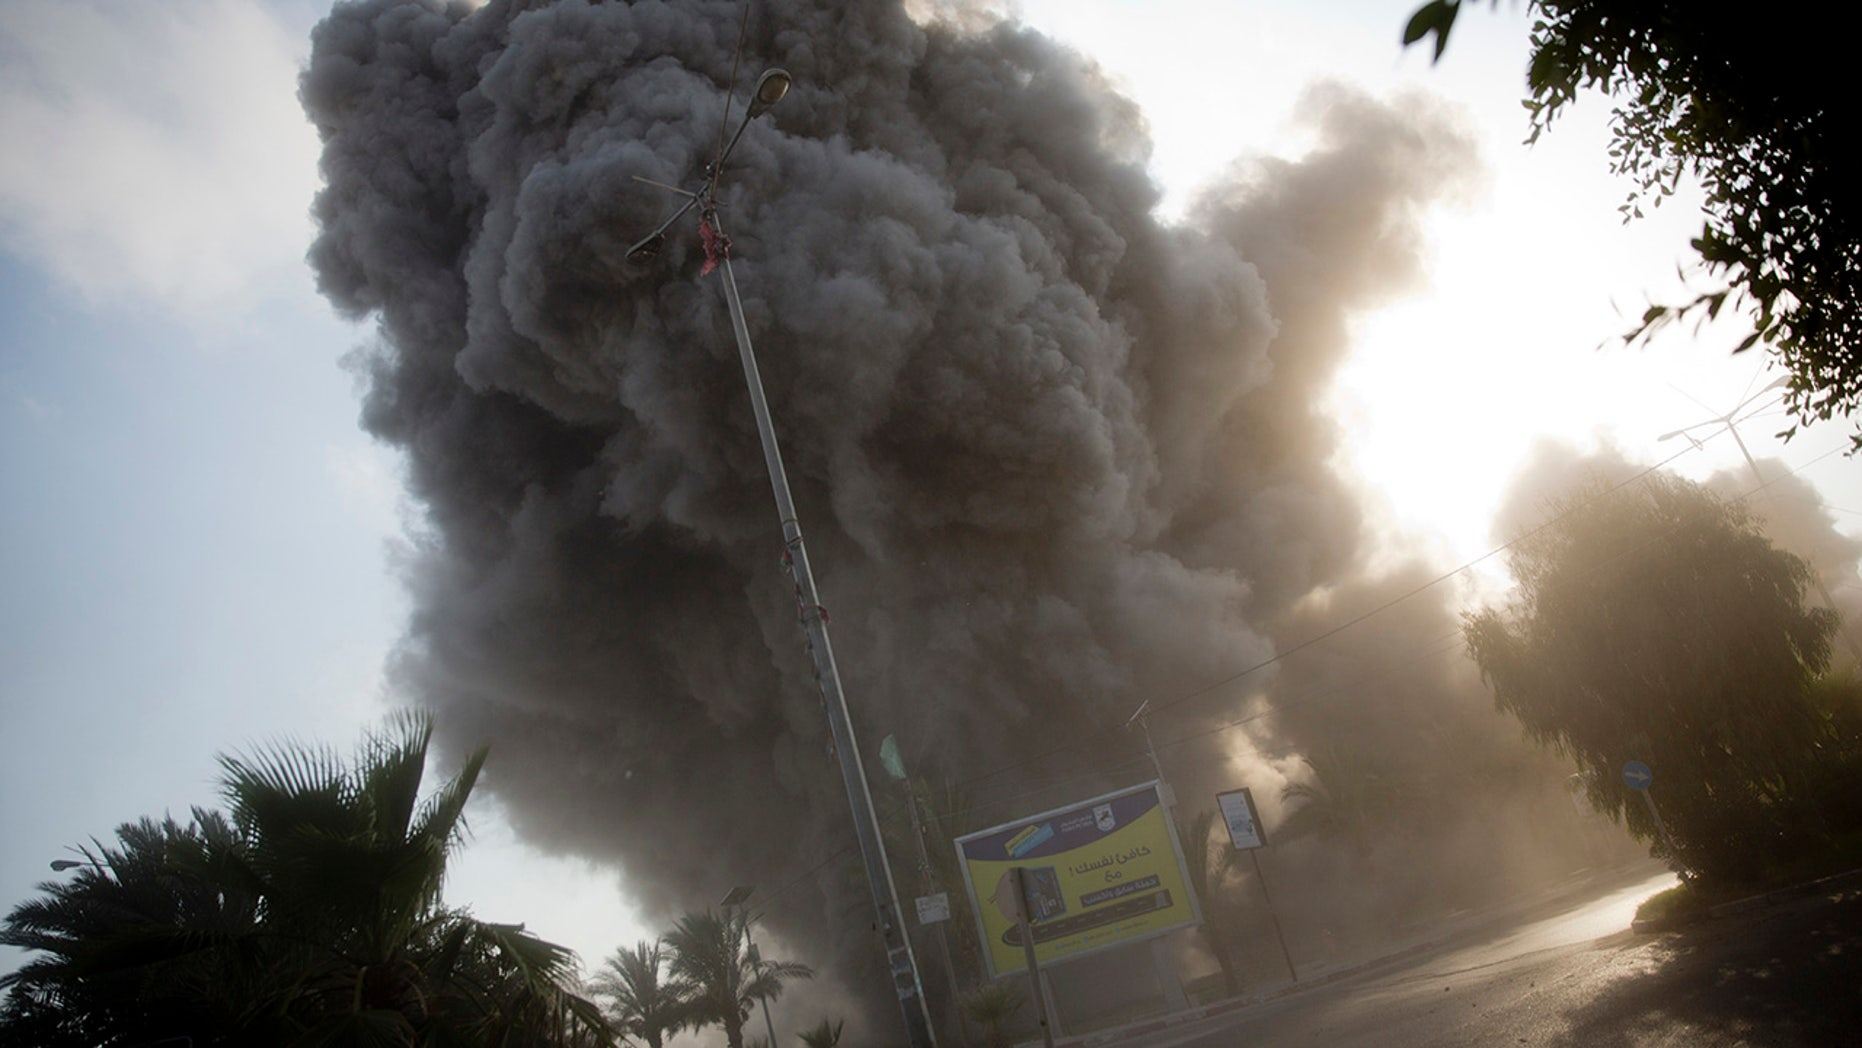 The Israeli military carried out its largest daytime airstrike campaign in Gaza since the 2014 war as Hamas militants fired dozens of rockets into Israel, threatening to spark a wider conflagration after weeks of tensions along the volatile border.